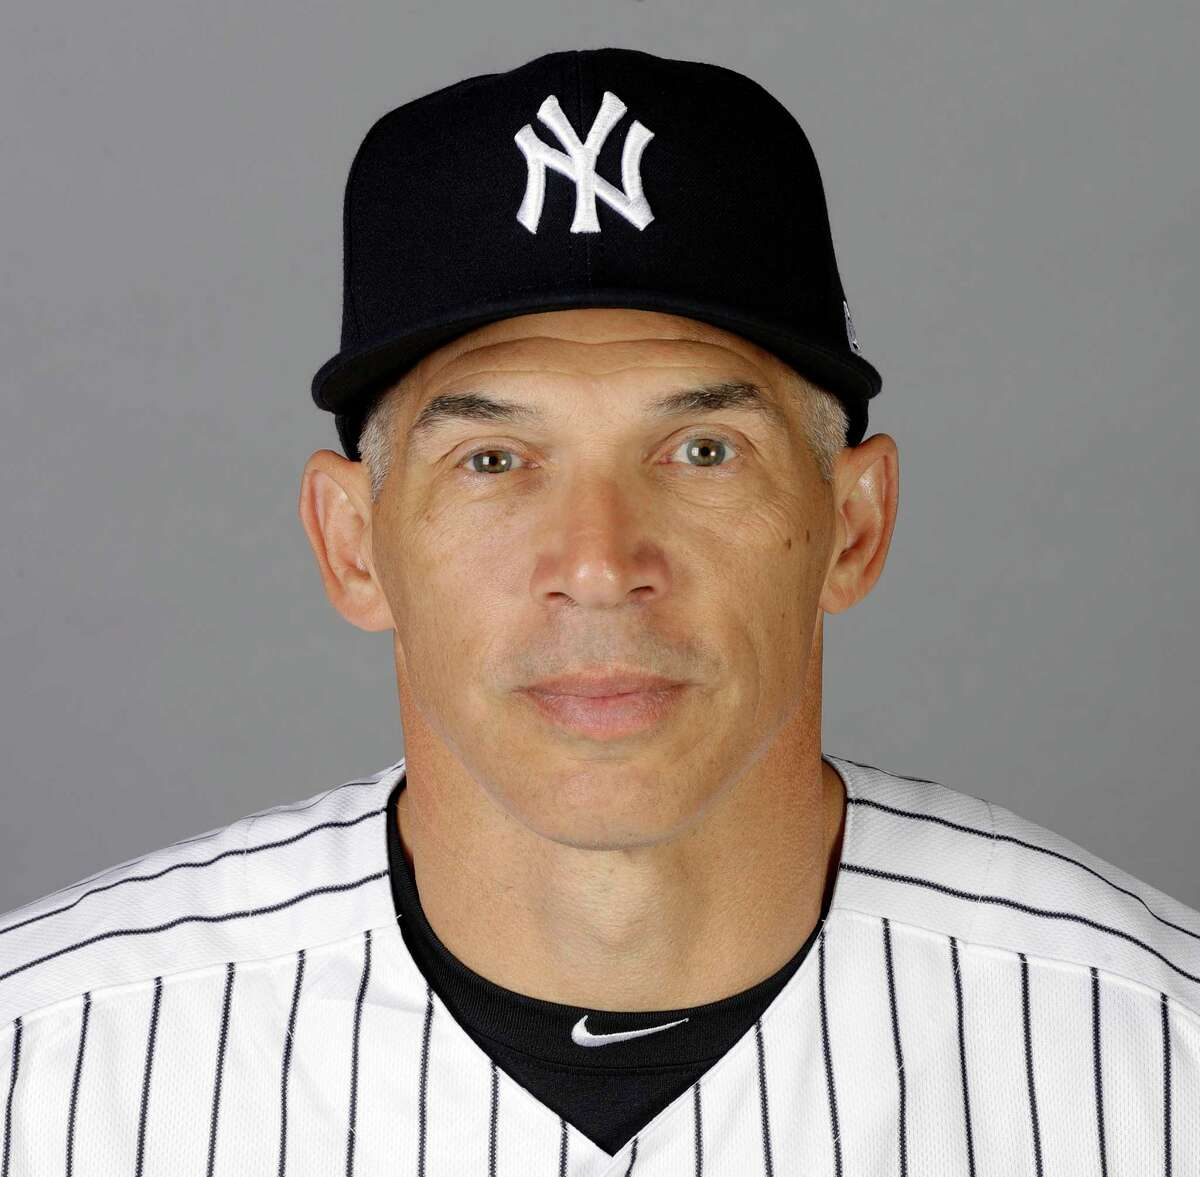 FILE - This is a Feb. 21, 2017, file photo showing New York Yankees manager Joe Girardi, in Tampa, Fla. The New York Yankees announced Thursday, Oct. 26, 2017, that Girardi will not return to the team in the 2018 season. The announcement was made by Yankees Senior Vice President and General Manager Brian Cashman. (AP Photo/Chris O'Meara, File)